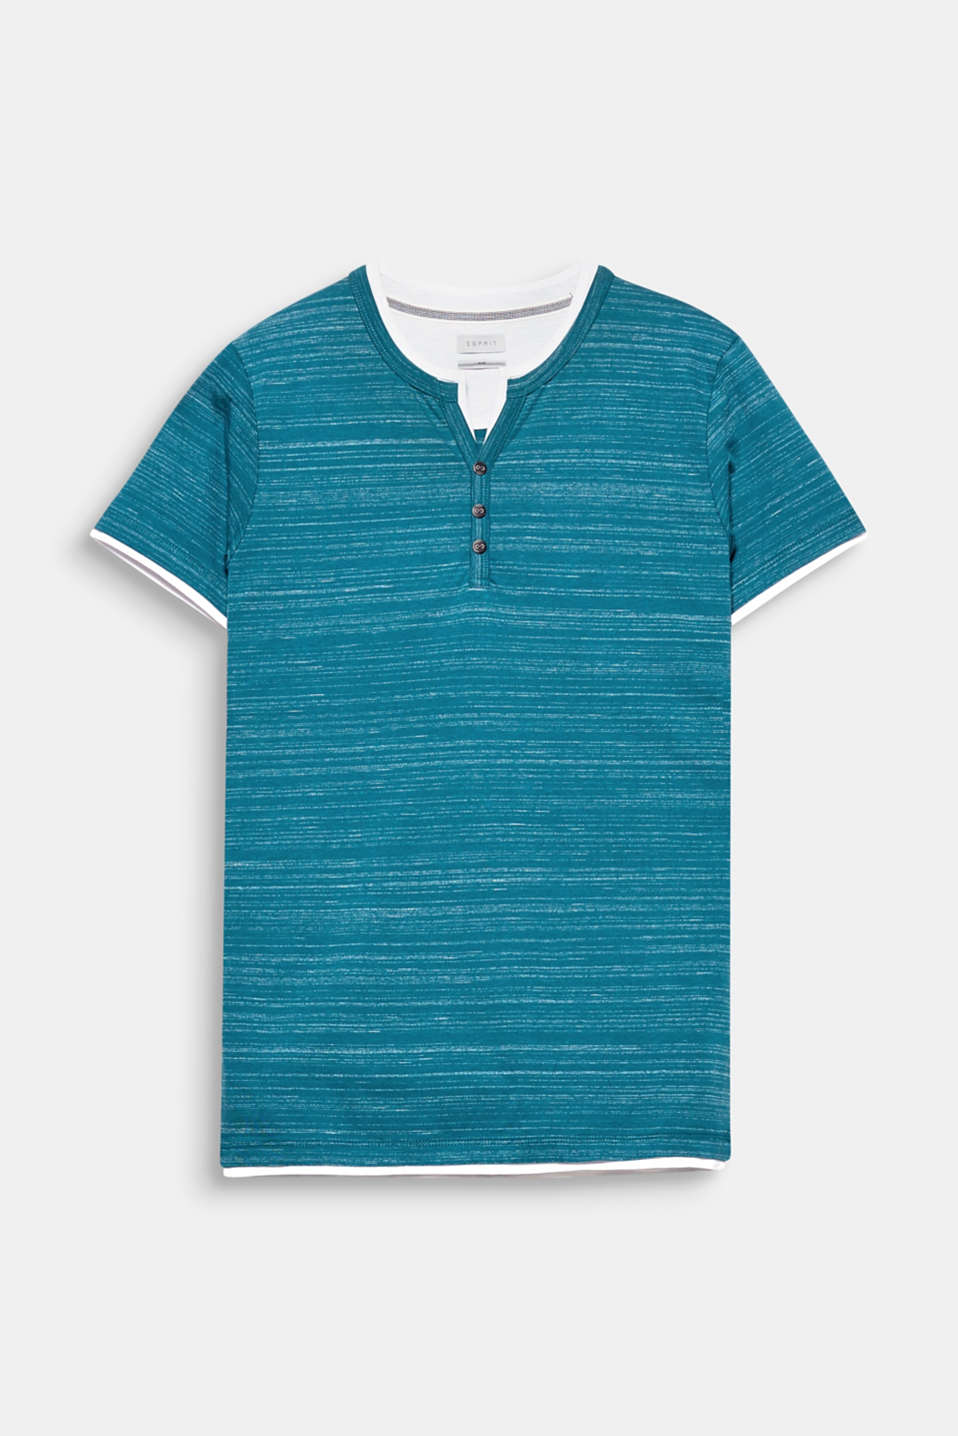 We love layering! This Henley top stands out thanks to its contrasting colour trim and slub effect.